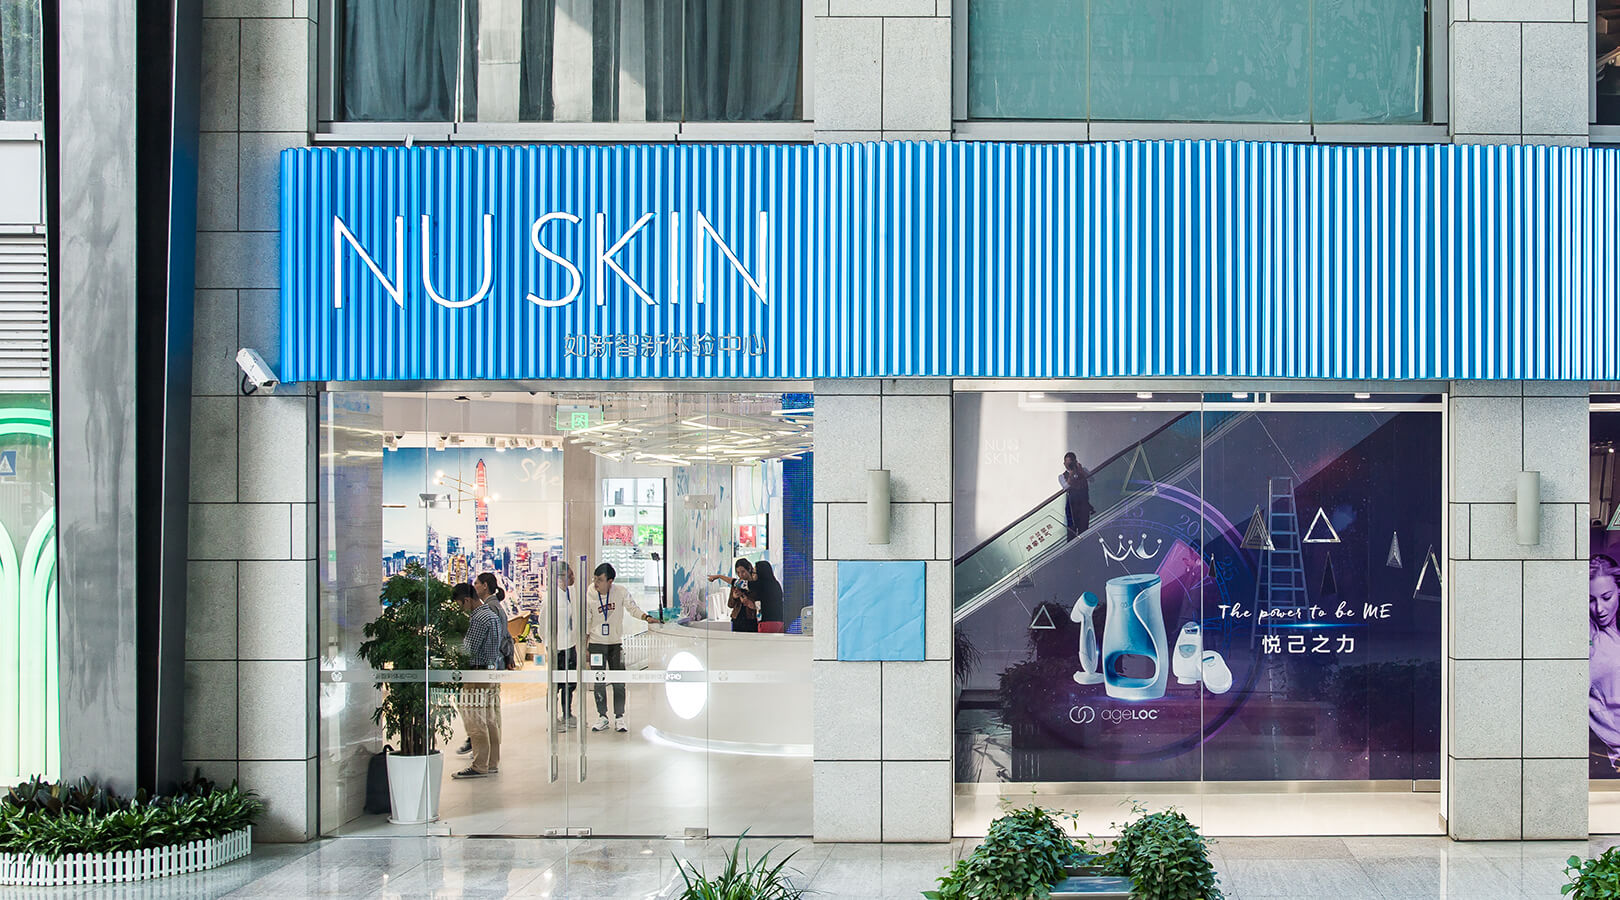 nu skin store exterior with bushes in front